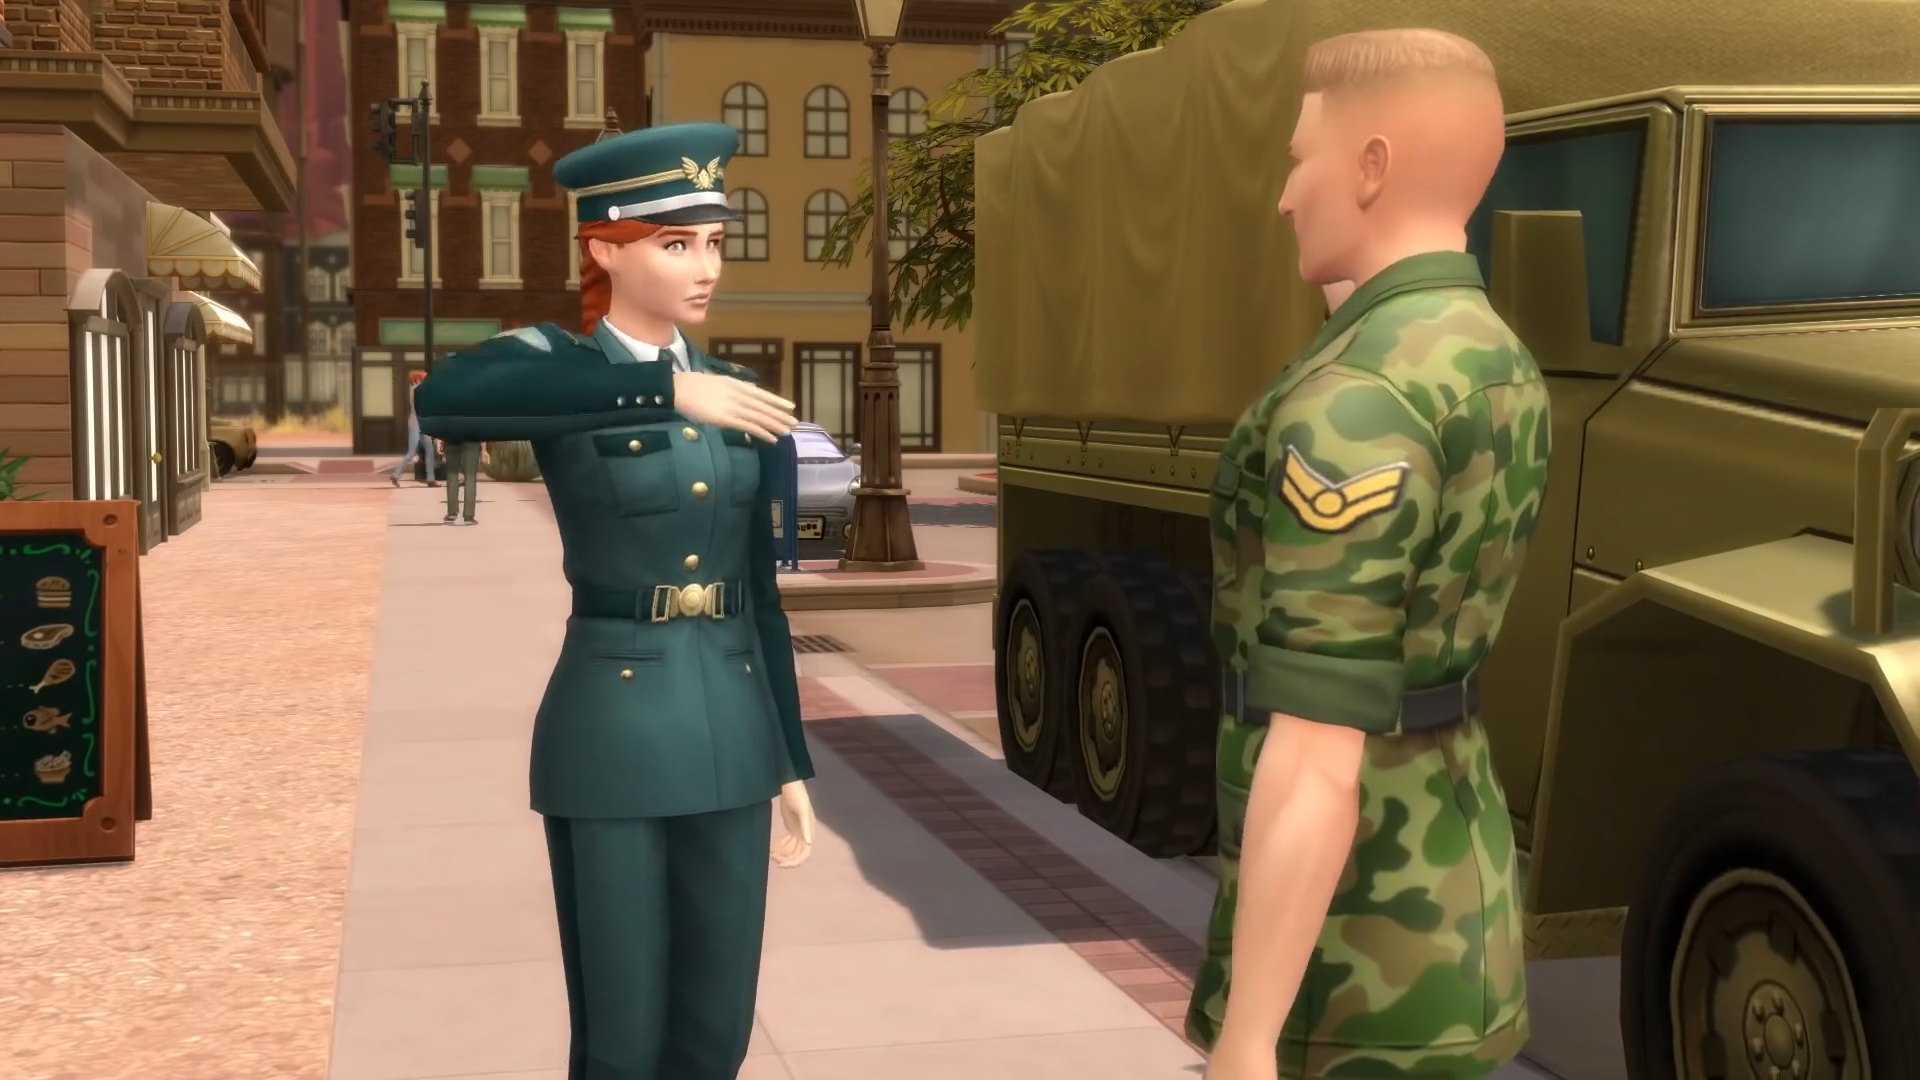 The Sims 4 Strangerville - Military career in this addon